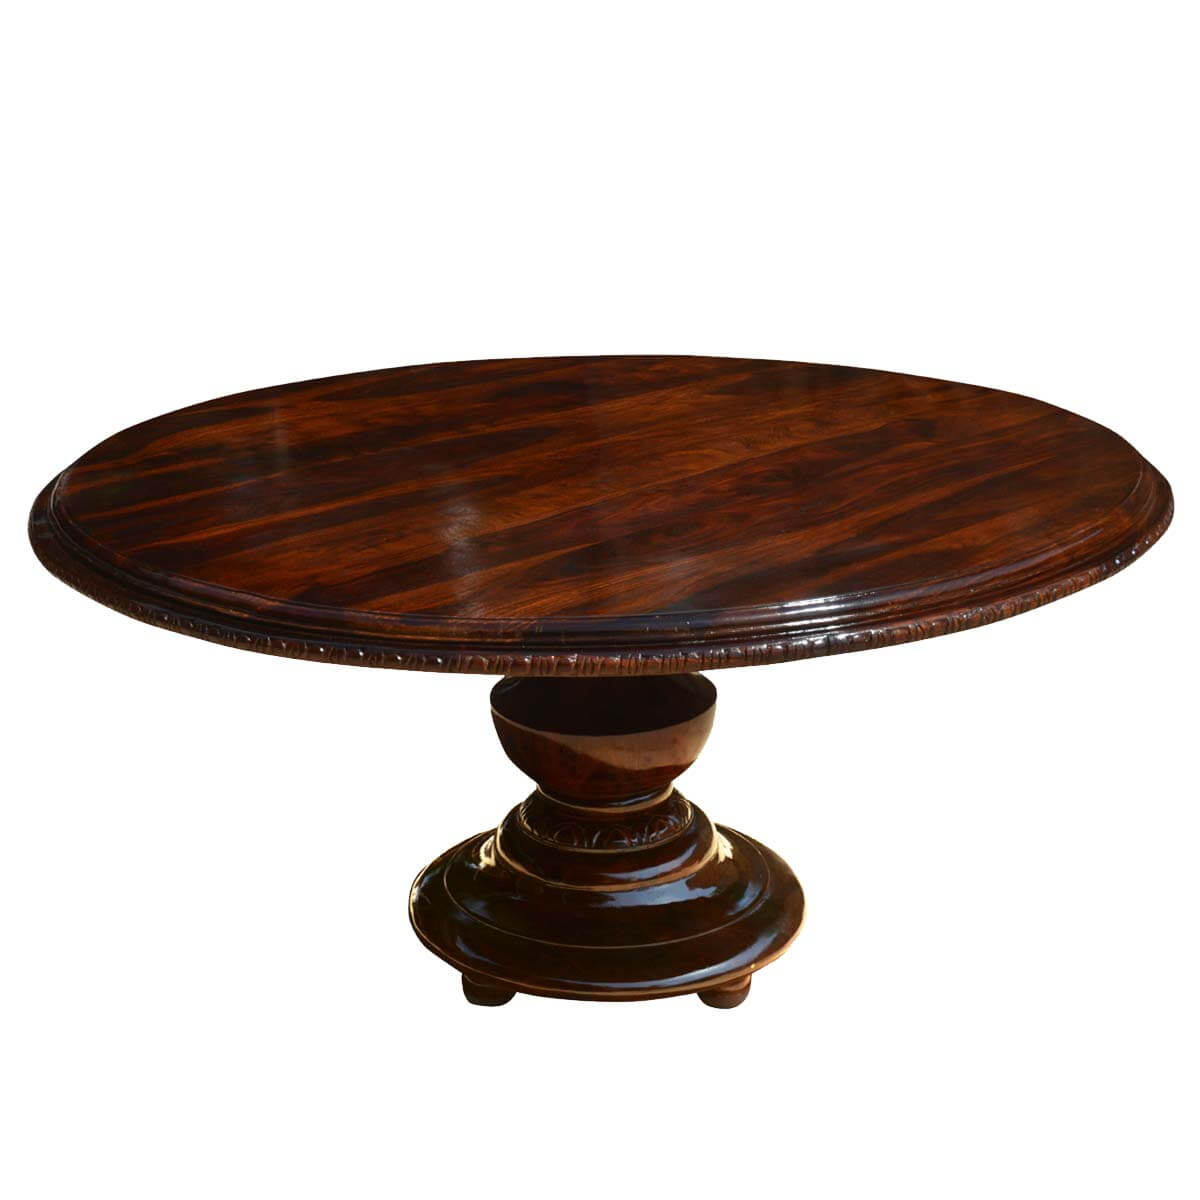 Rustic solid wood pedestal round dining table - Pedestal kitchen tables ...